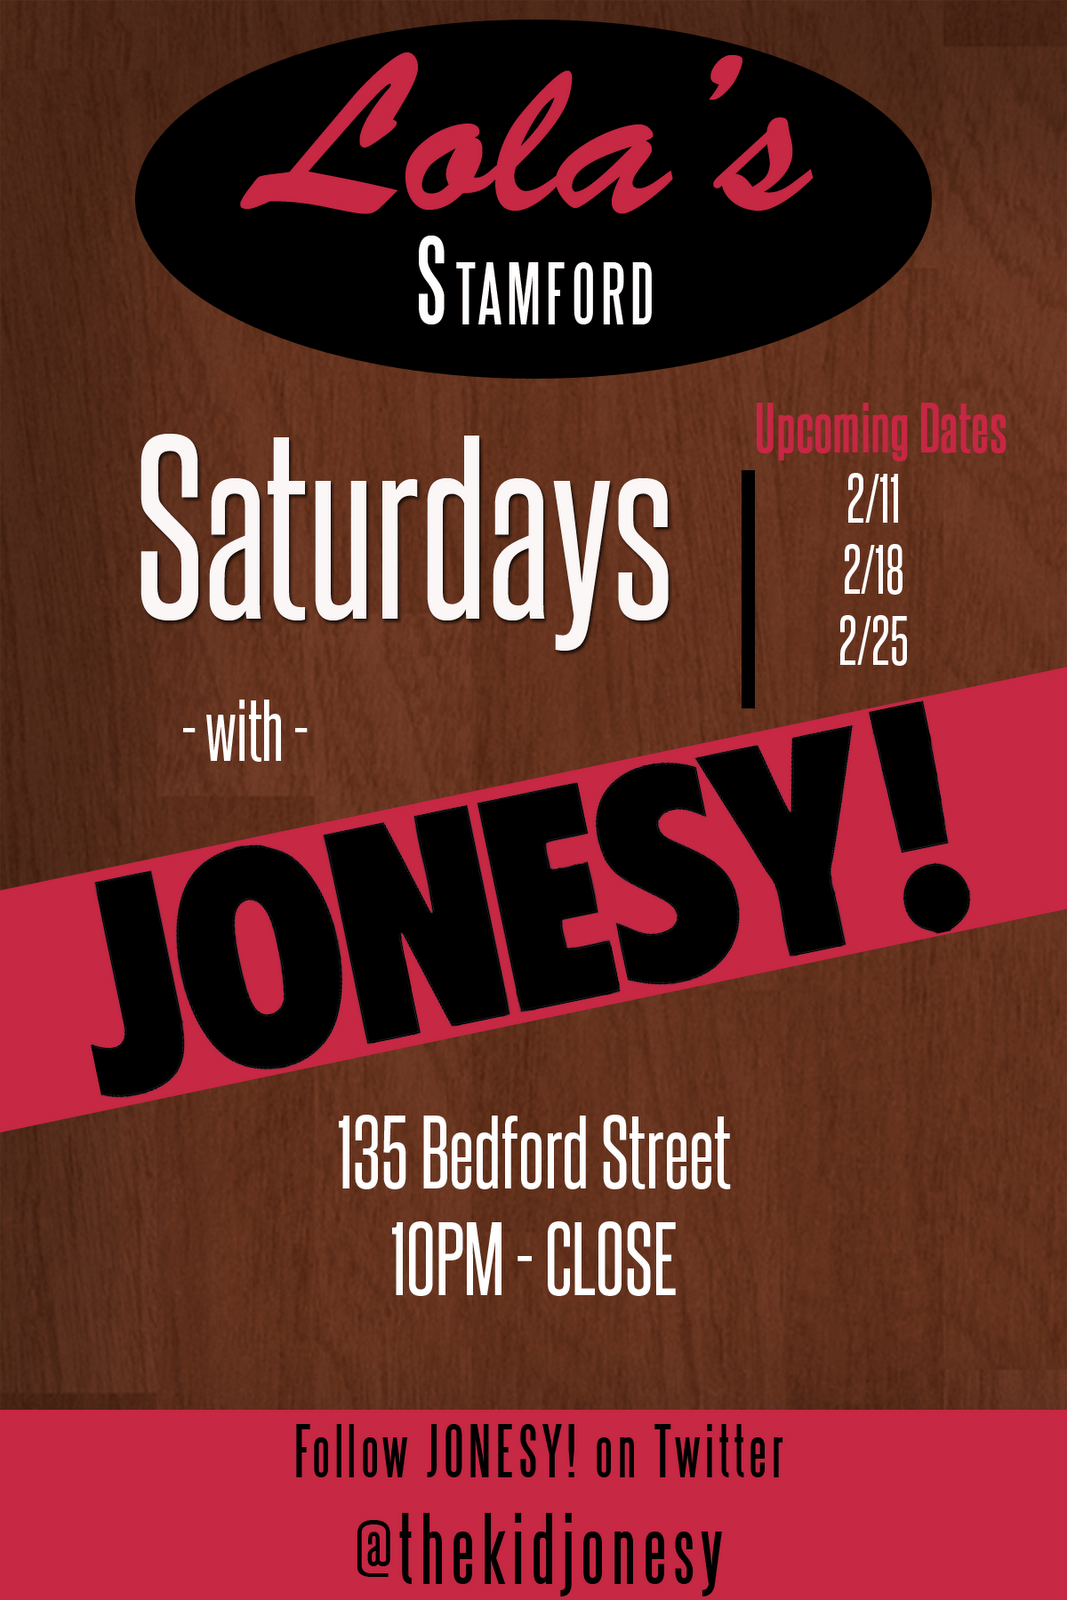 All throughout the month of Feb. I will be spinning beats at Lola's Stamford - Saturday's 10pm - Close. Come Join Me!